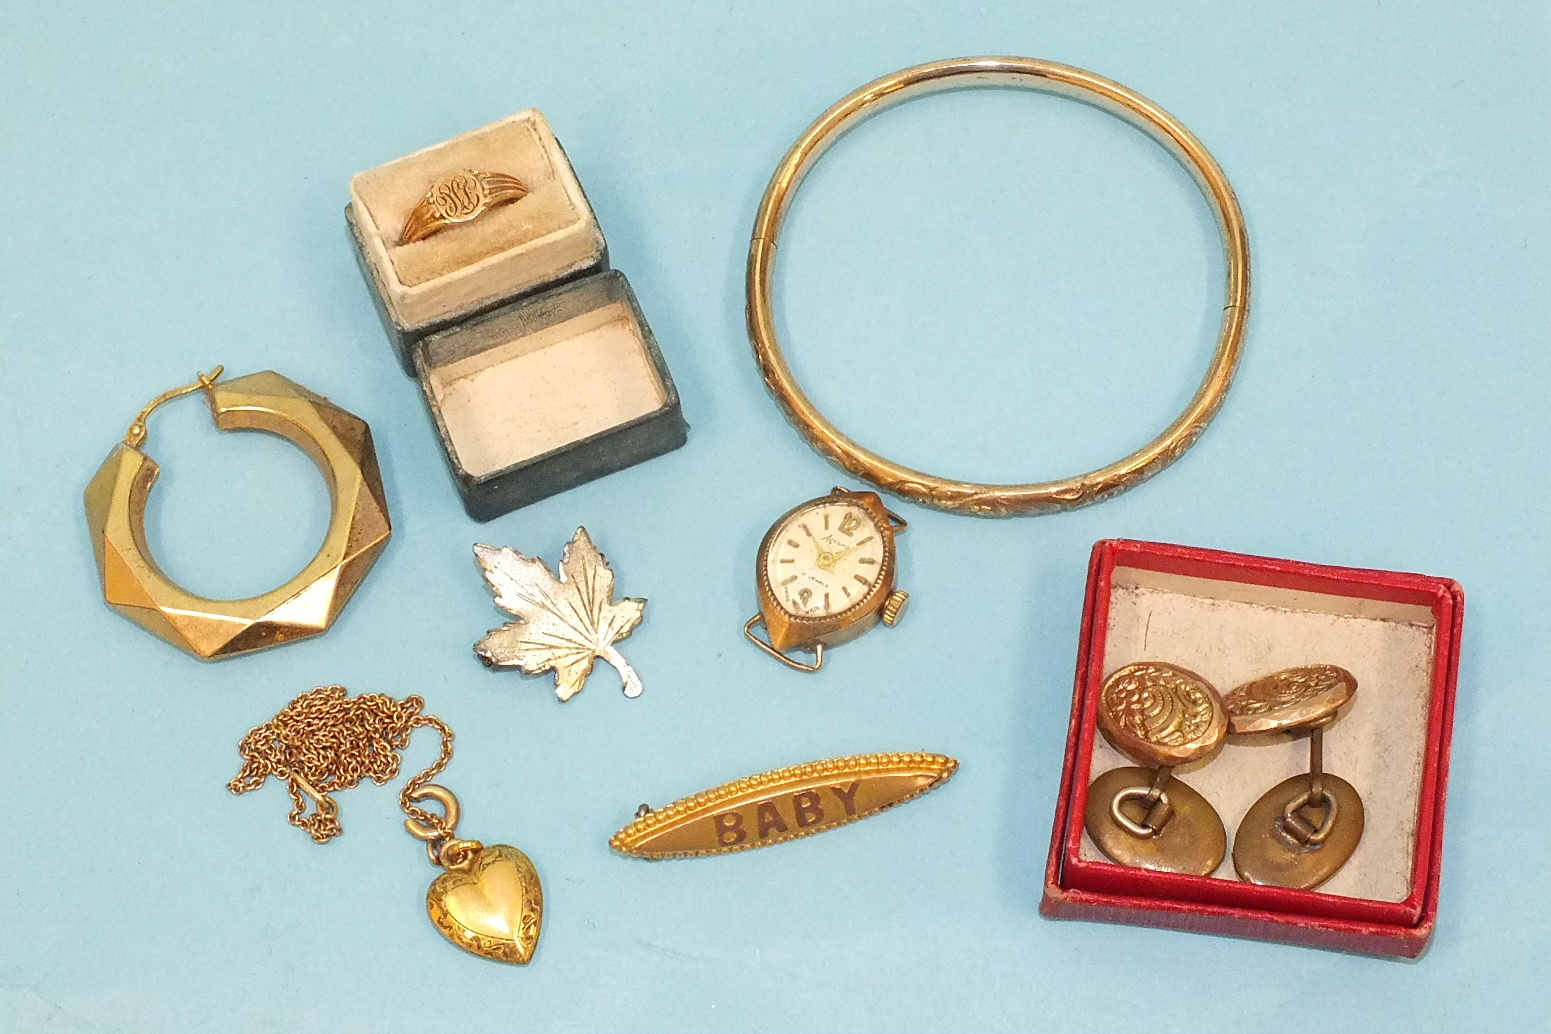 """Lot 130 - A small 9ct gold brooch """"BABY"""", a '10K' gold child's ring, size B½ and other items, weighable gold"""